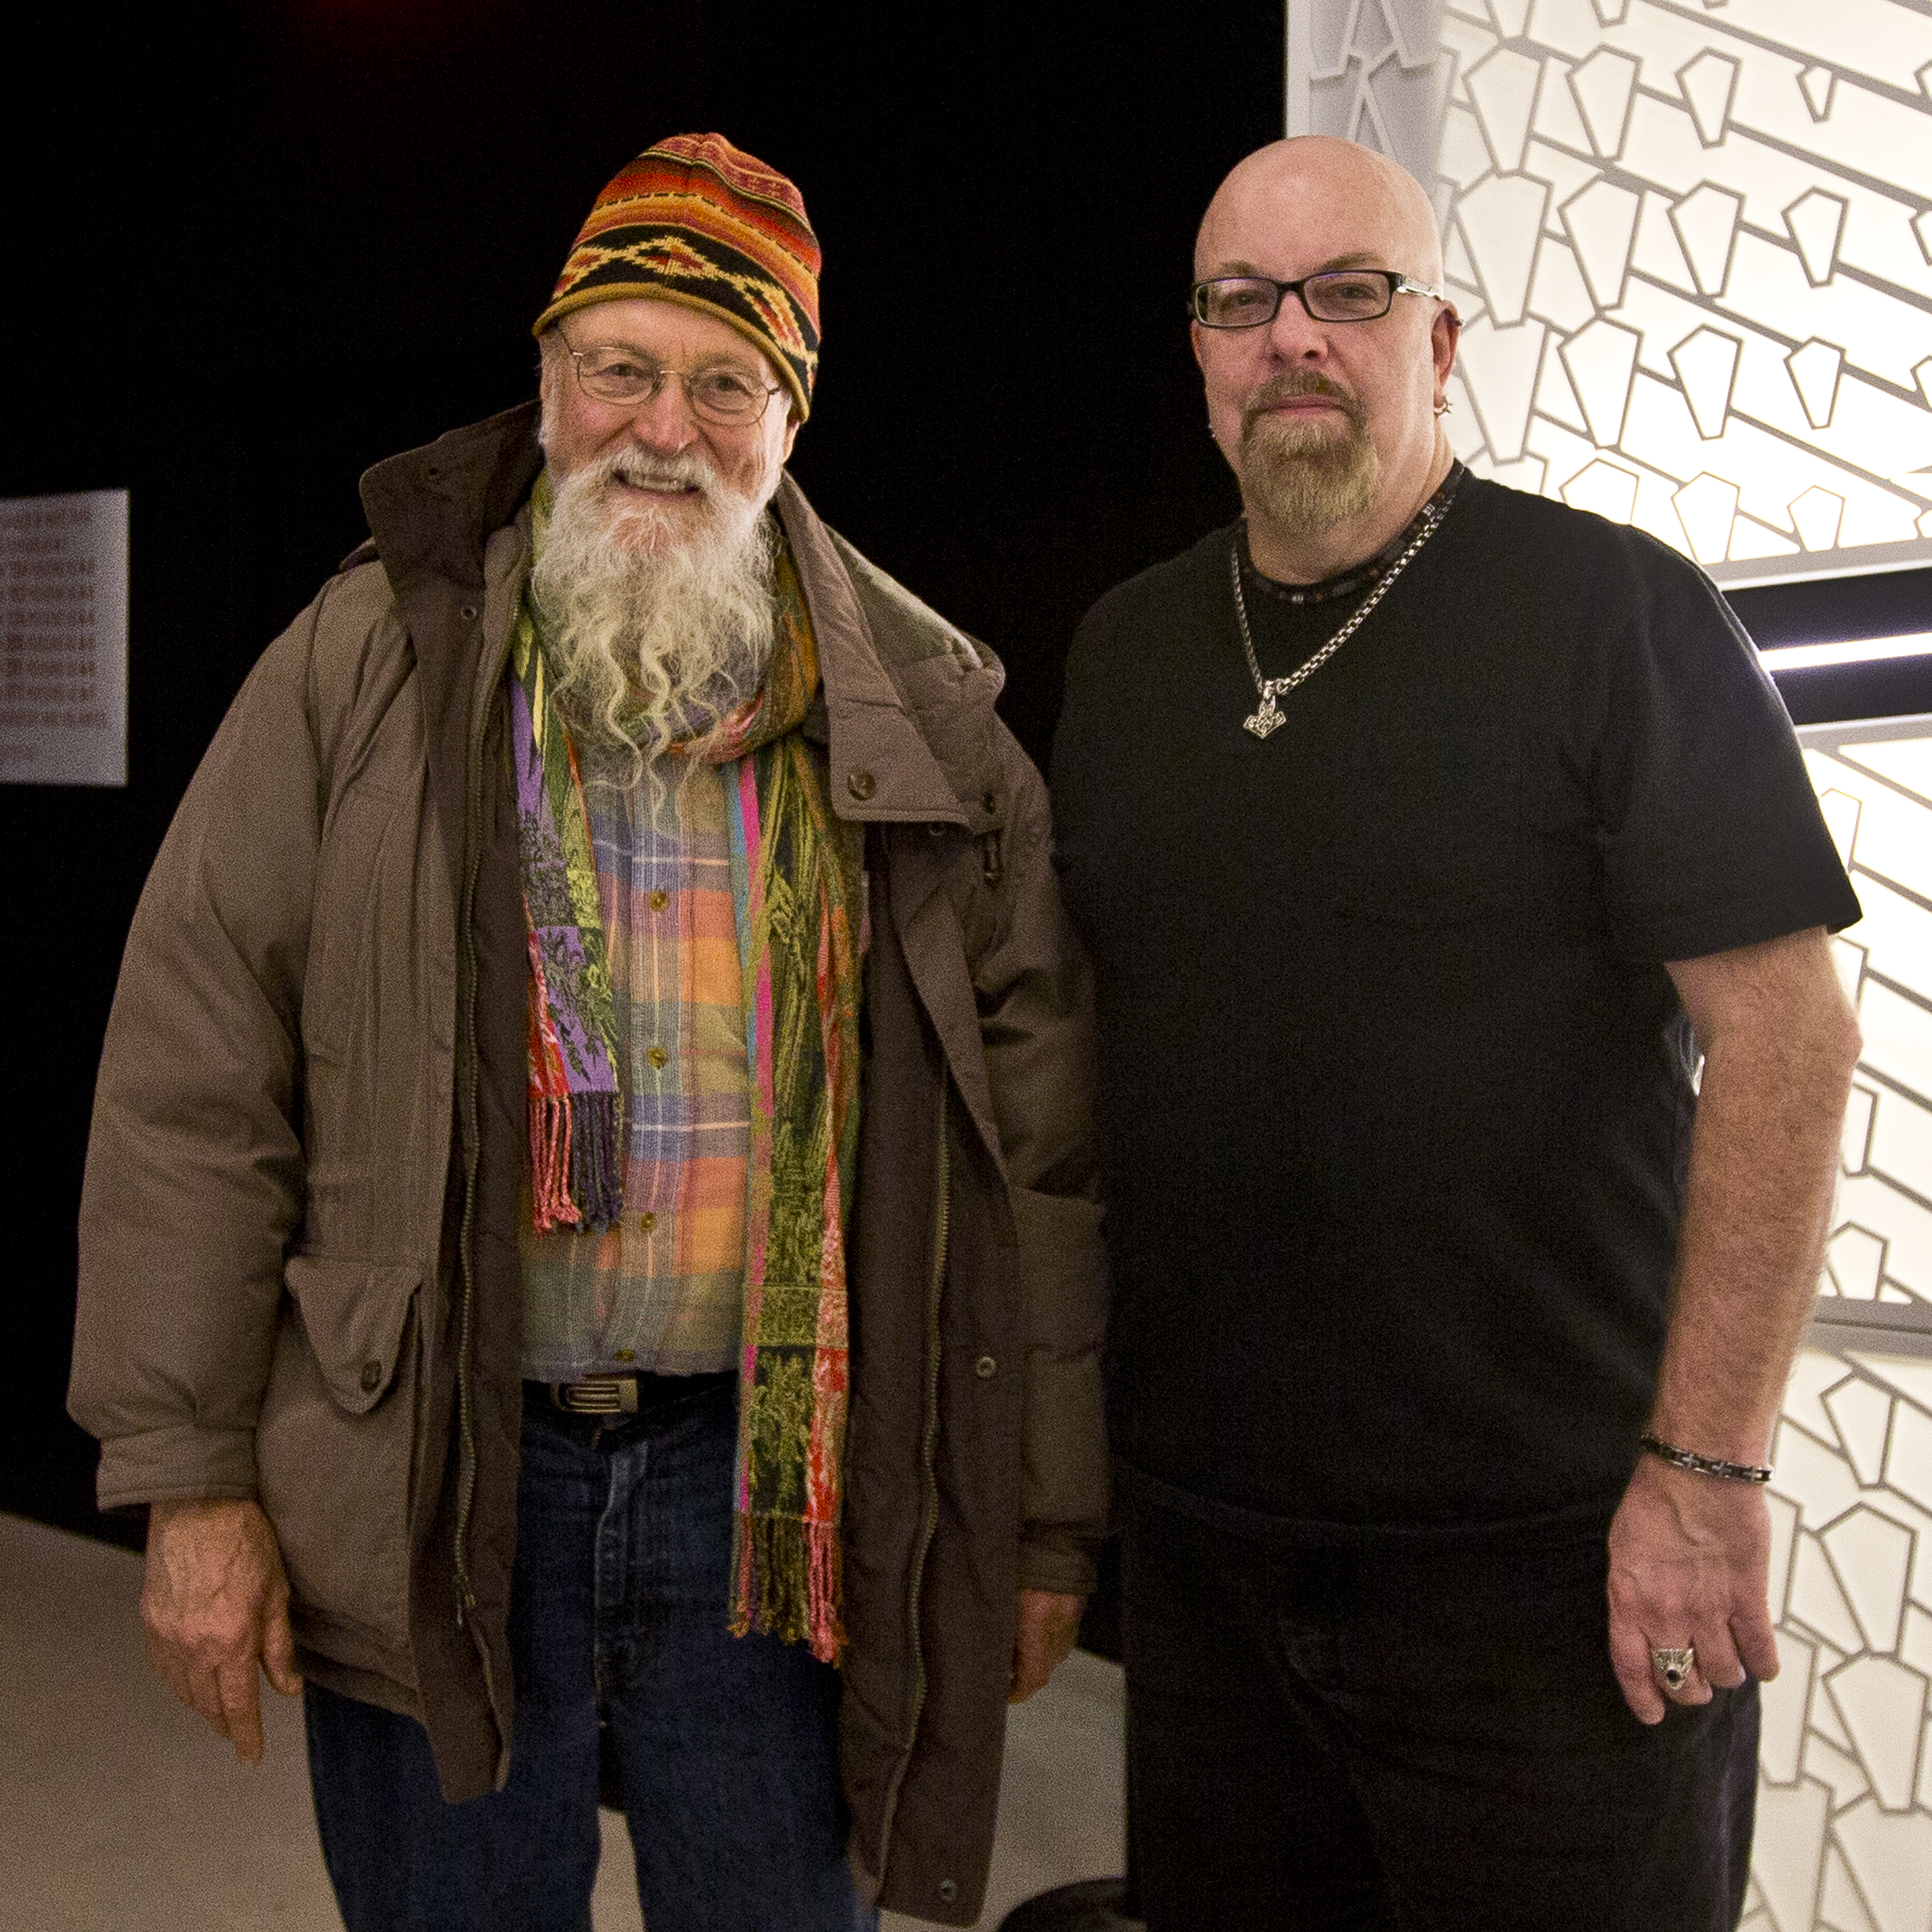 With Terry Riley at Terry Riley Festival 4 at National Sawdust in Brooklyn, NY- October 4, 2015